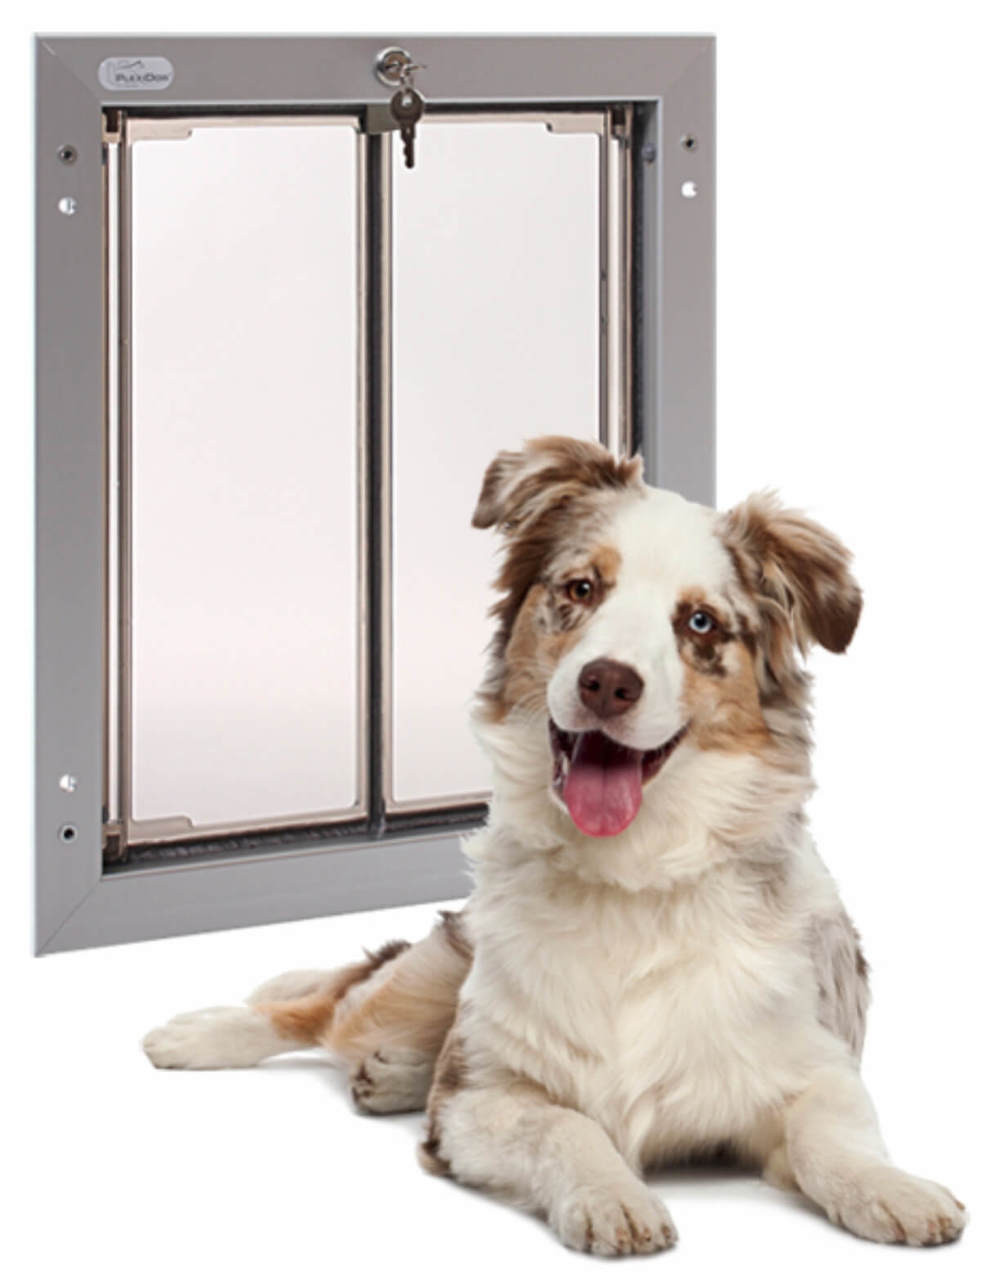 Plexidor large dog doors fit german shepherds, labradors, pointers, and other large breeds up to 90 pounds or so